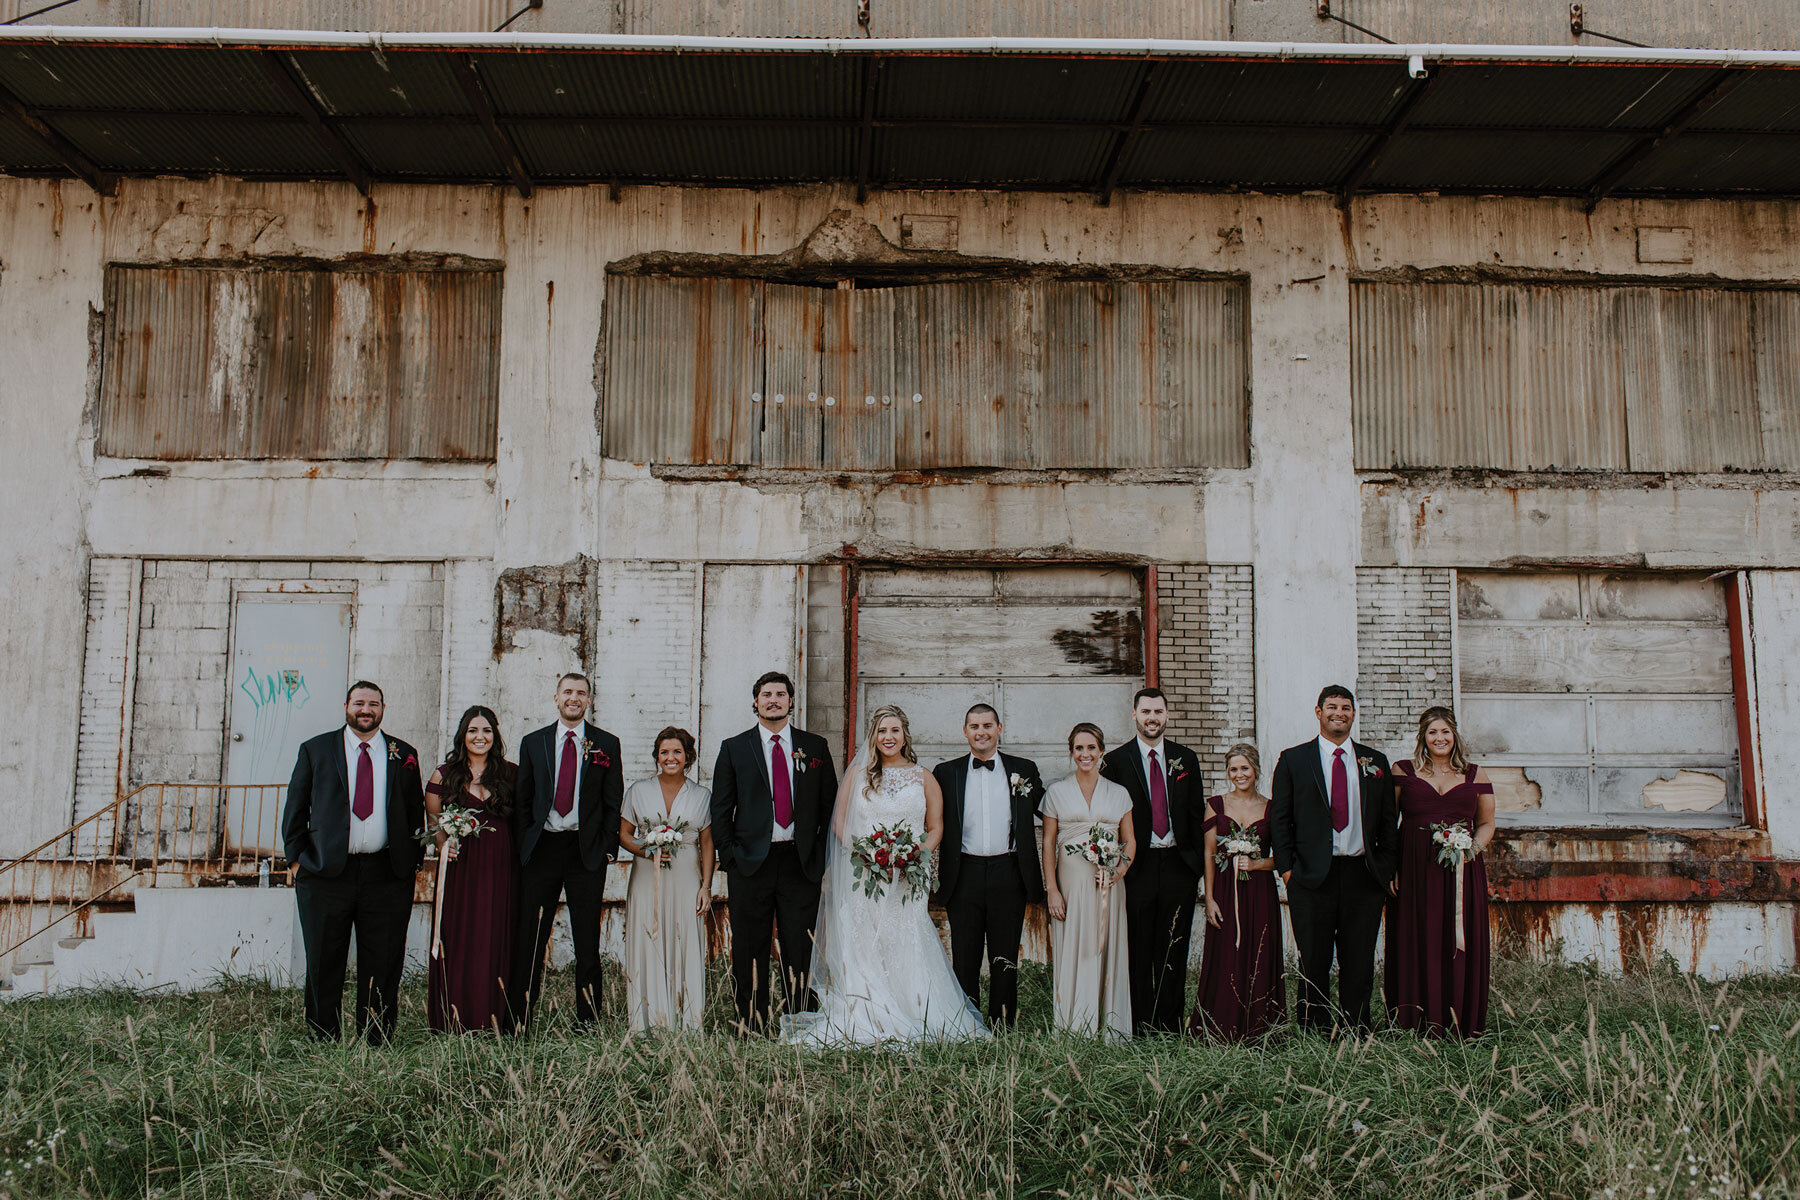 Kala + JC - All the fall wedding vibes are right here!